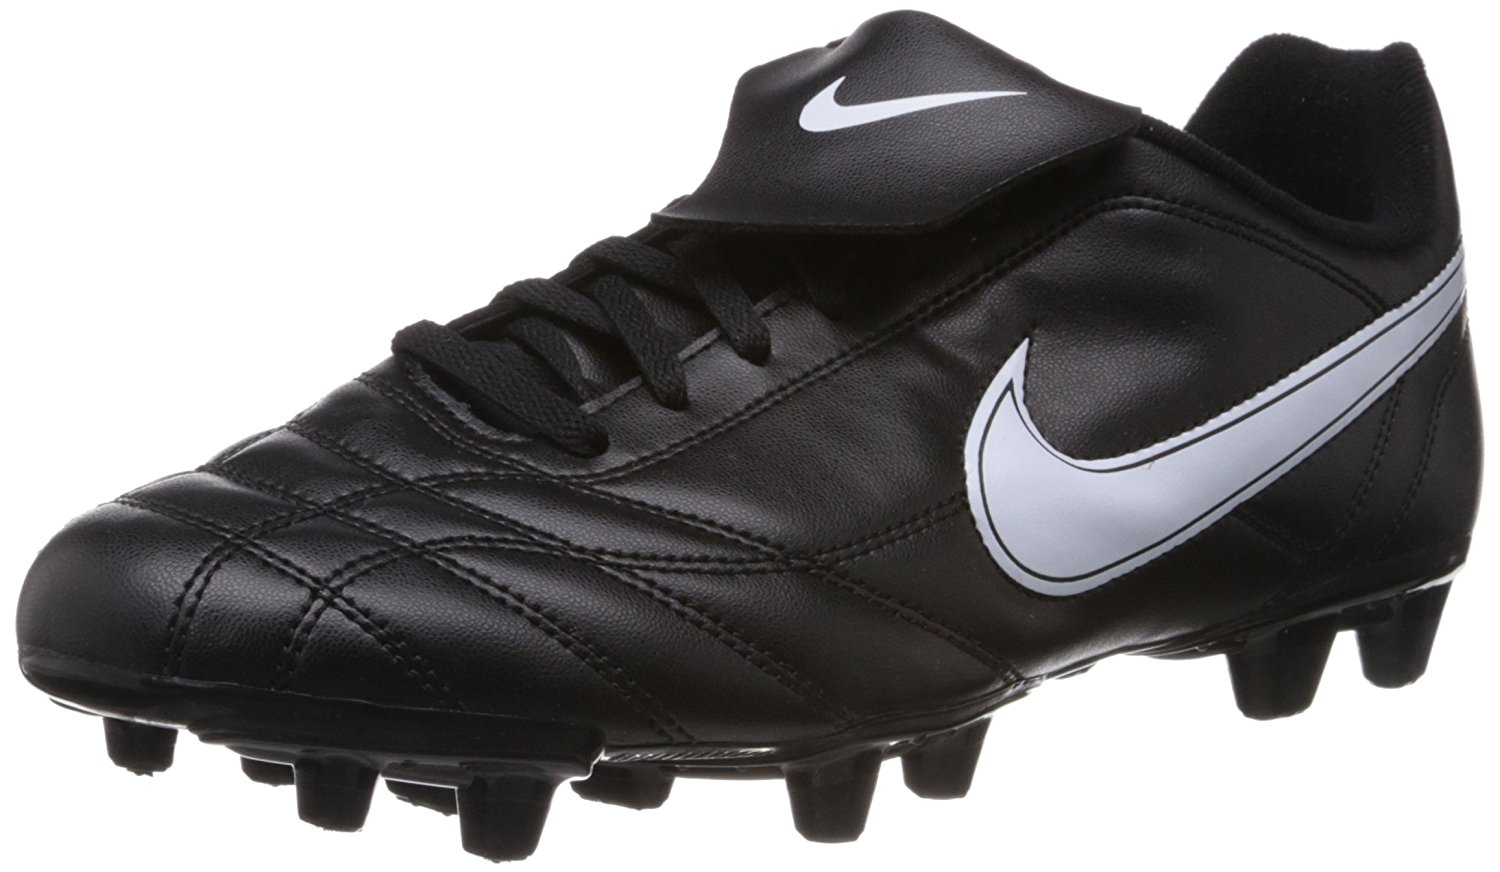 Your Best Buy Football Boots On Amazon Are Just A Click Away Playo